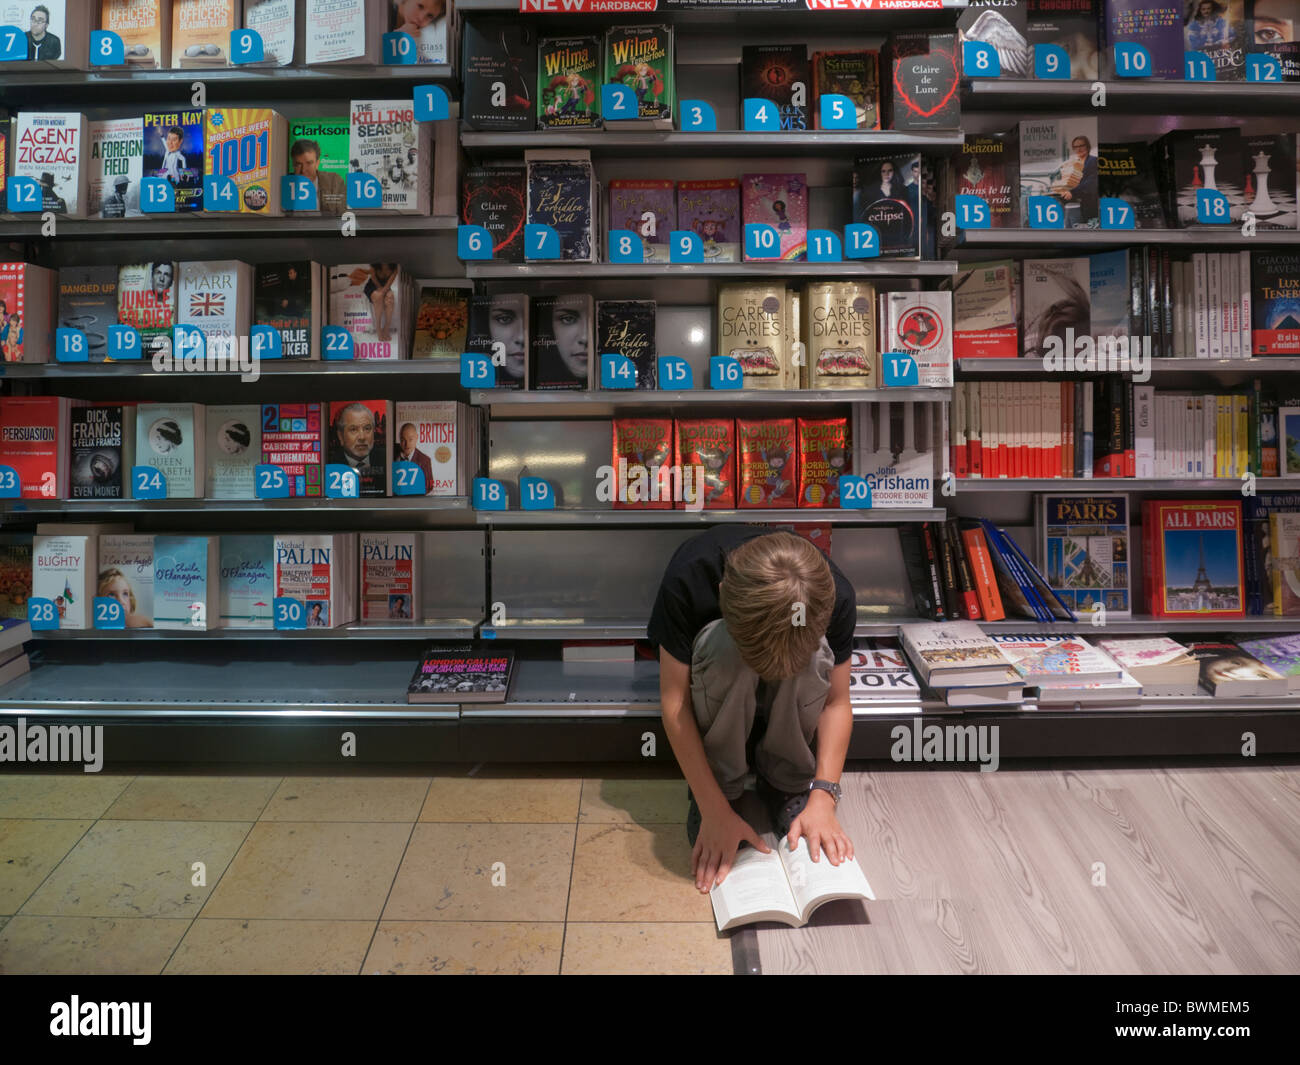 Ten year old boy reads in WH Smith bookshop at Sangatte channel tunnel - Stock Image